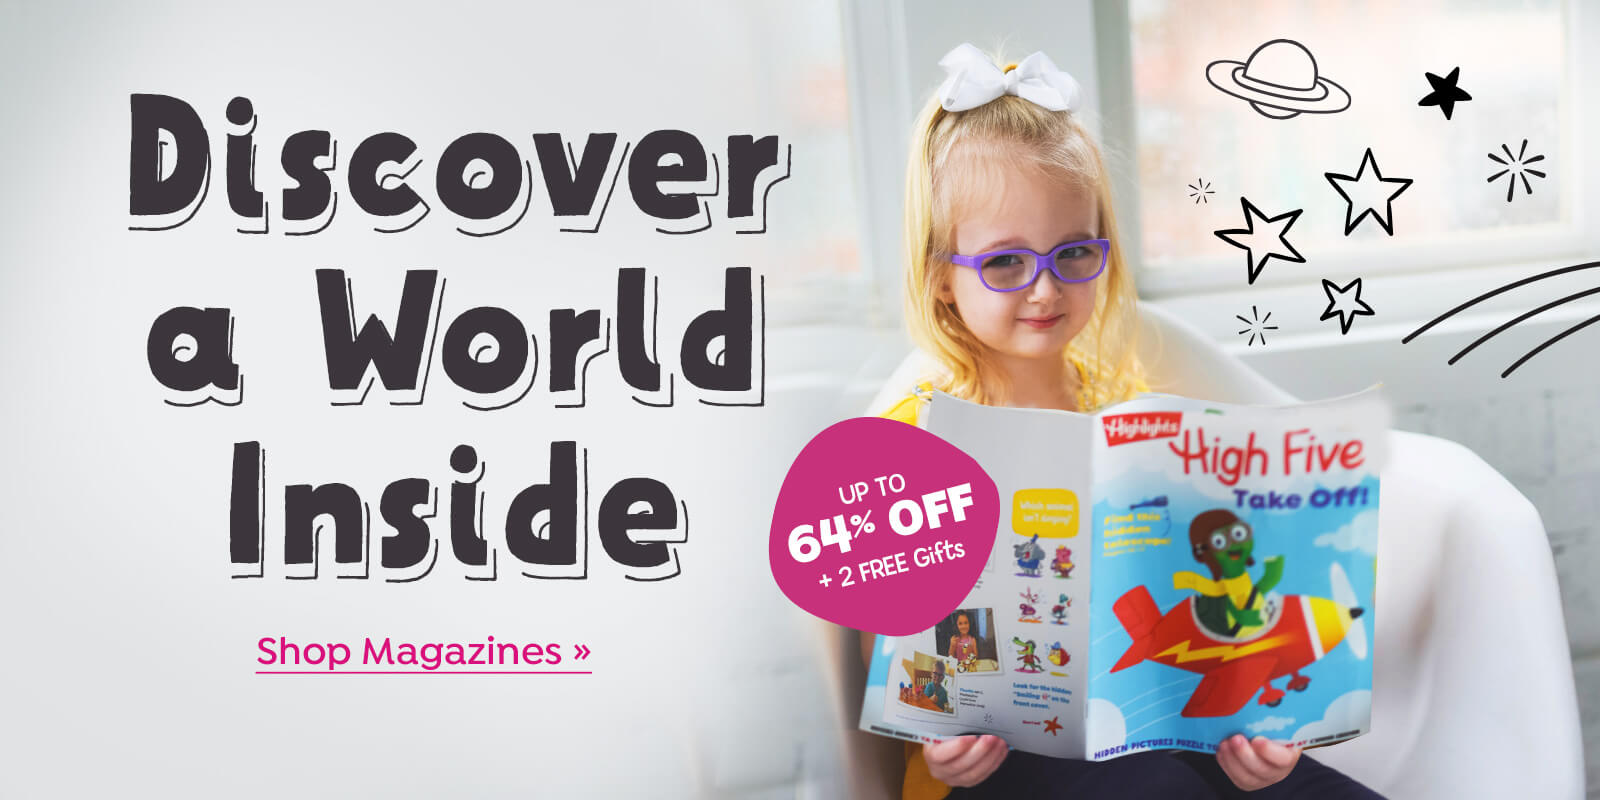 Discover a world of stories in our magazines, plus save over 60% off and get 2 free gifts!